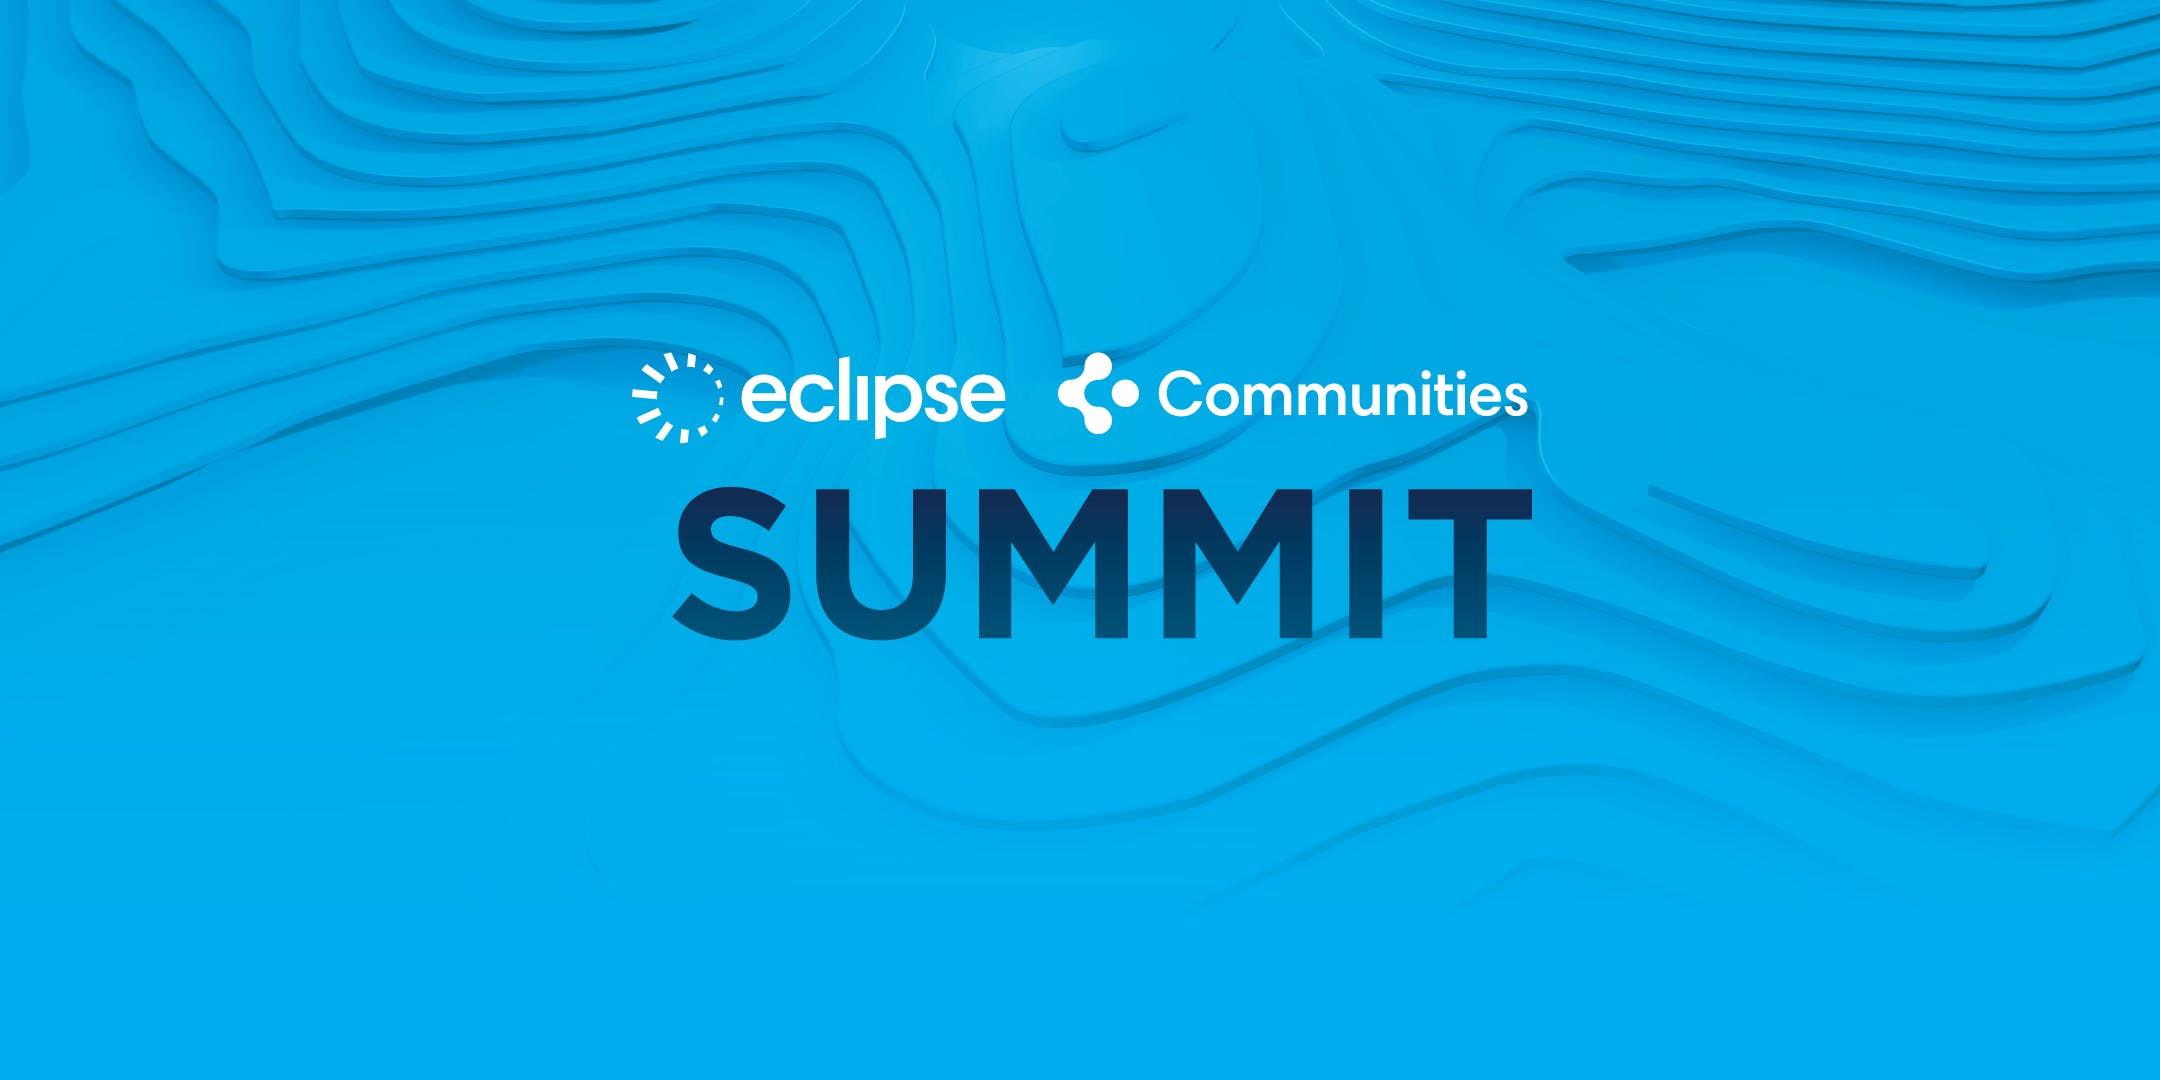 Eclipse and Communities Summit - Omaha Advanced Training